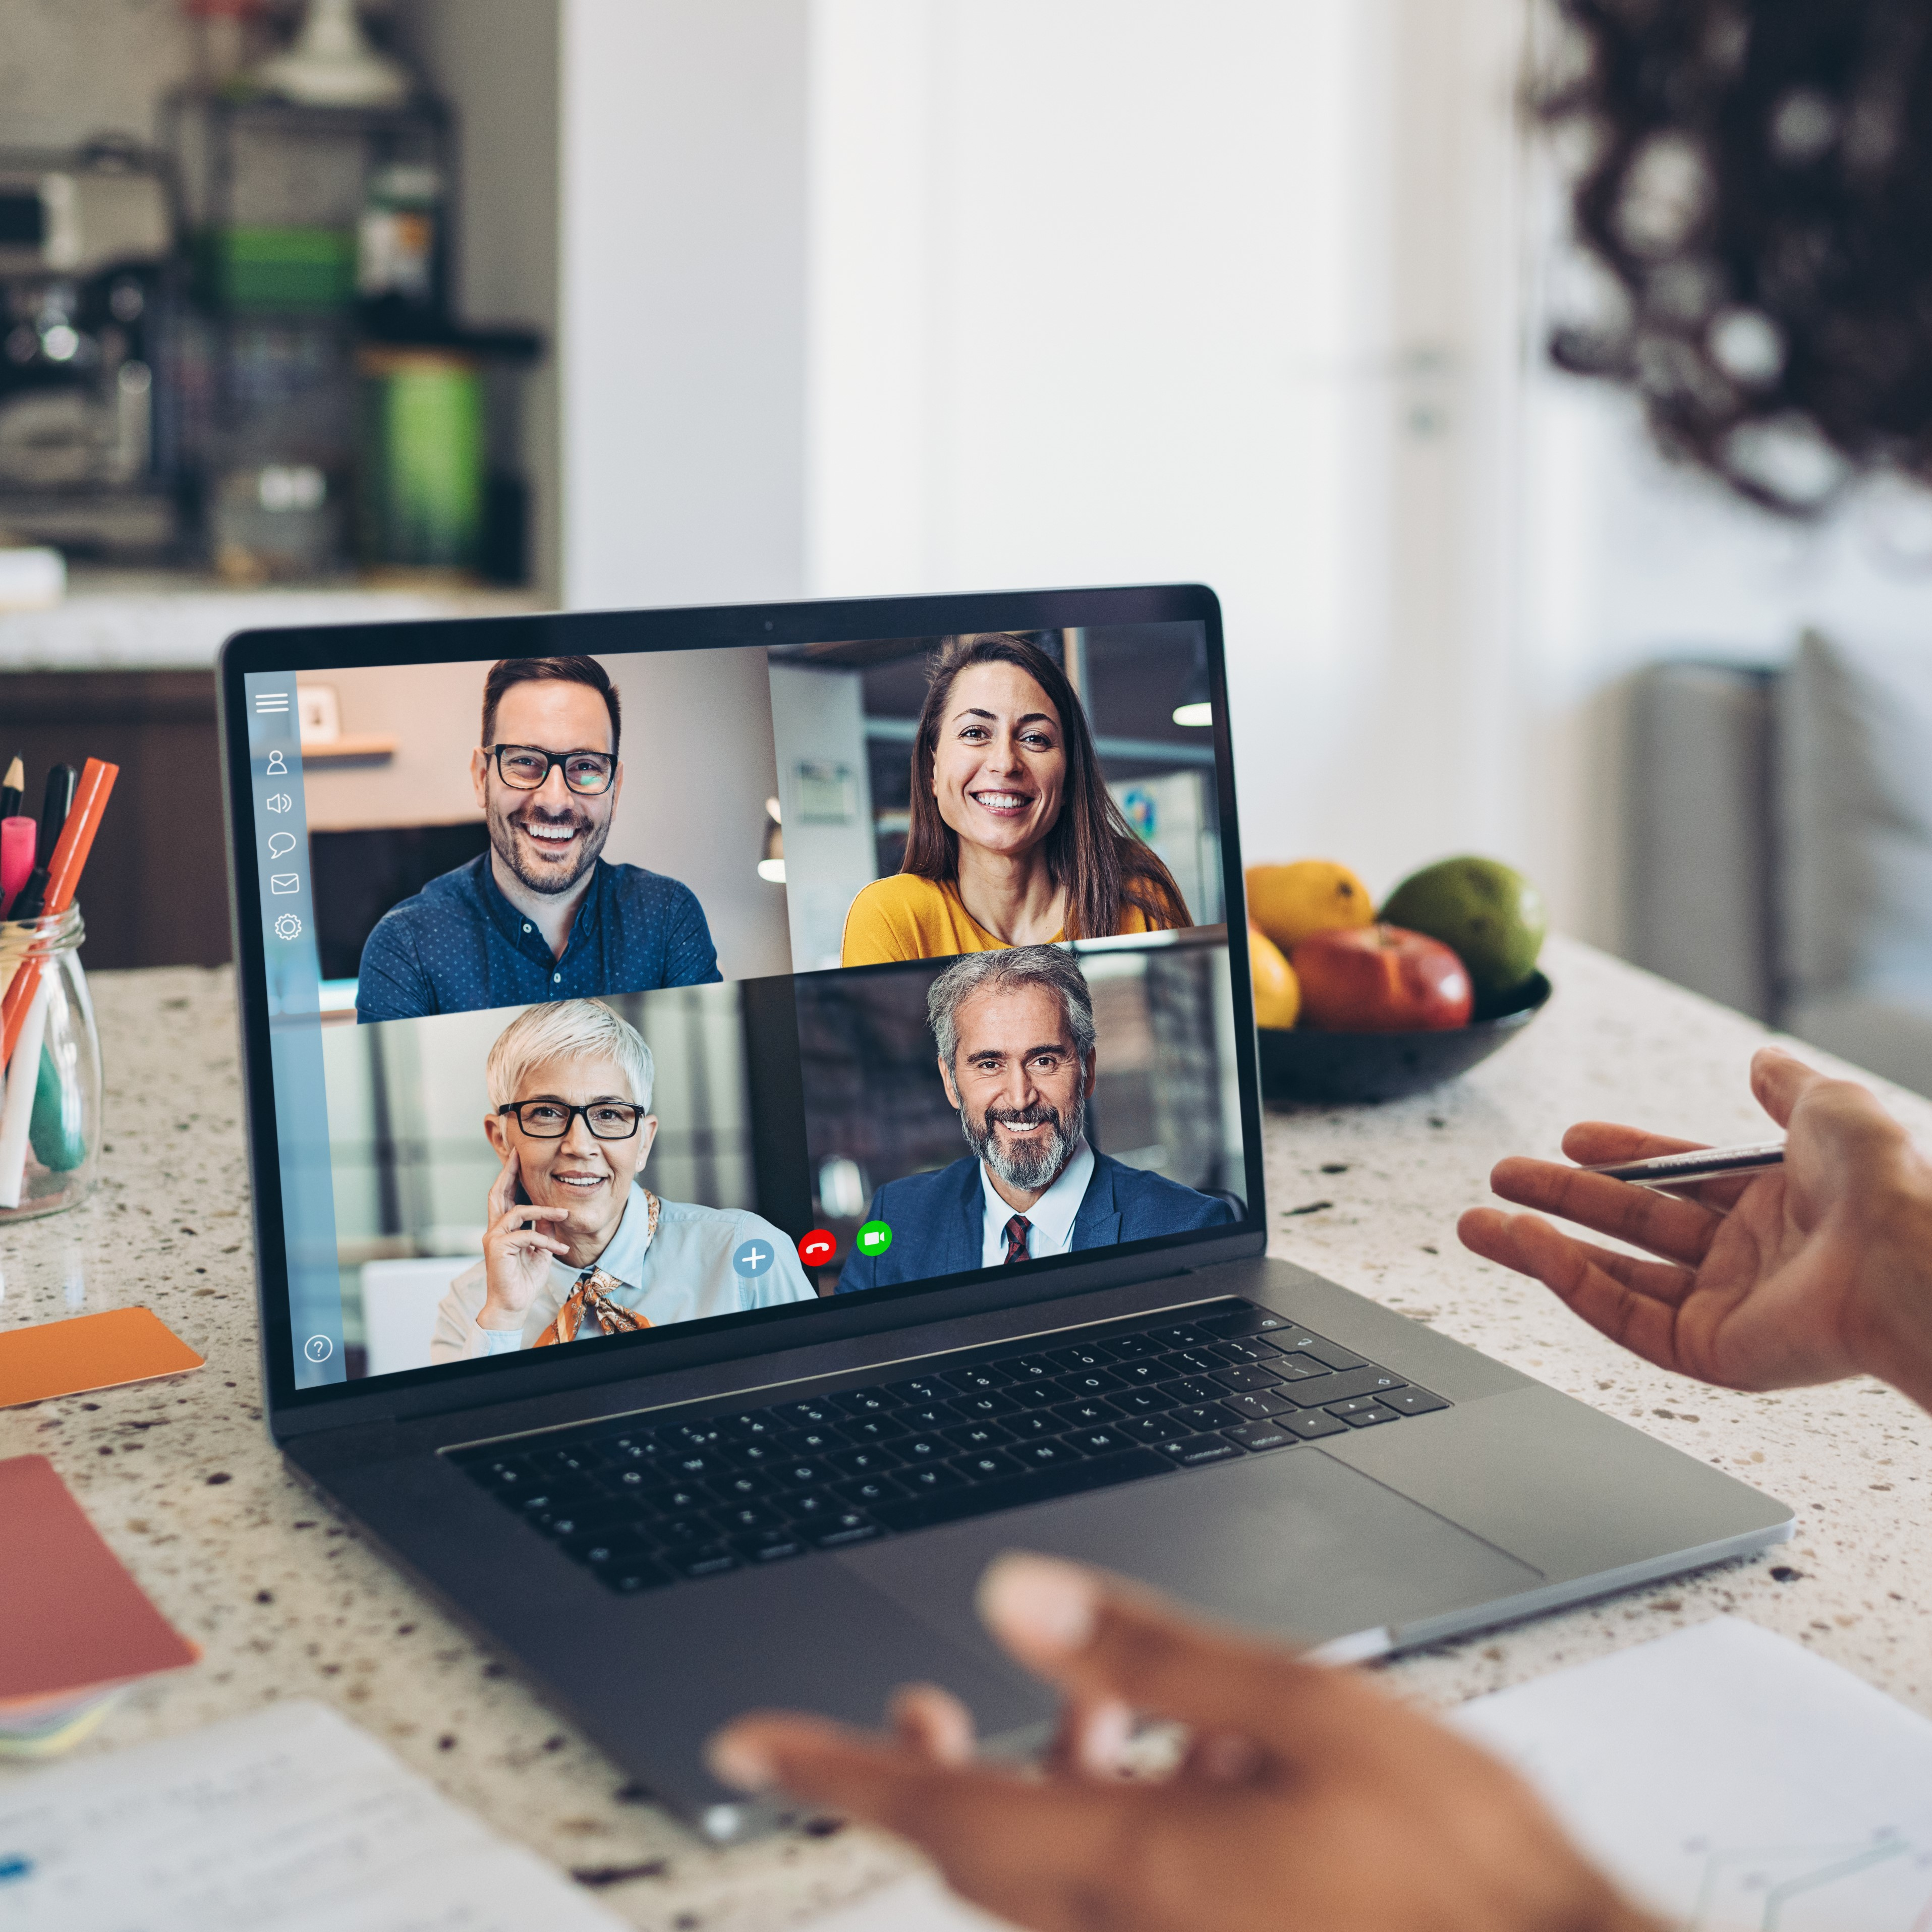 How to Join a Zoom Meeting